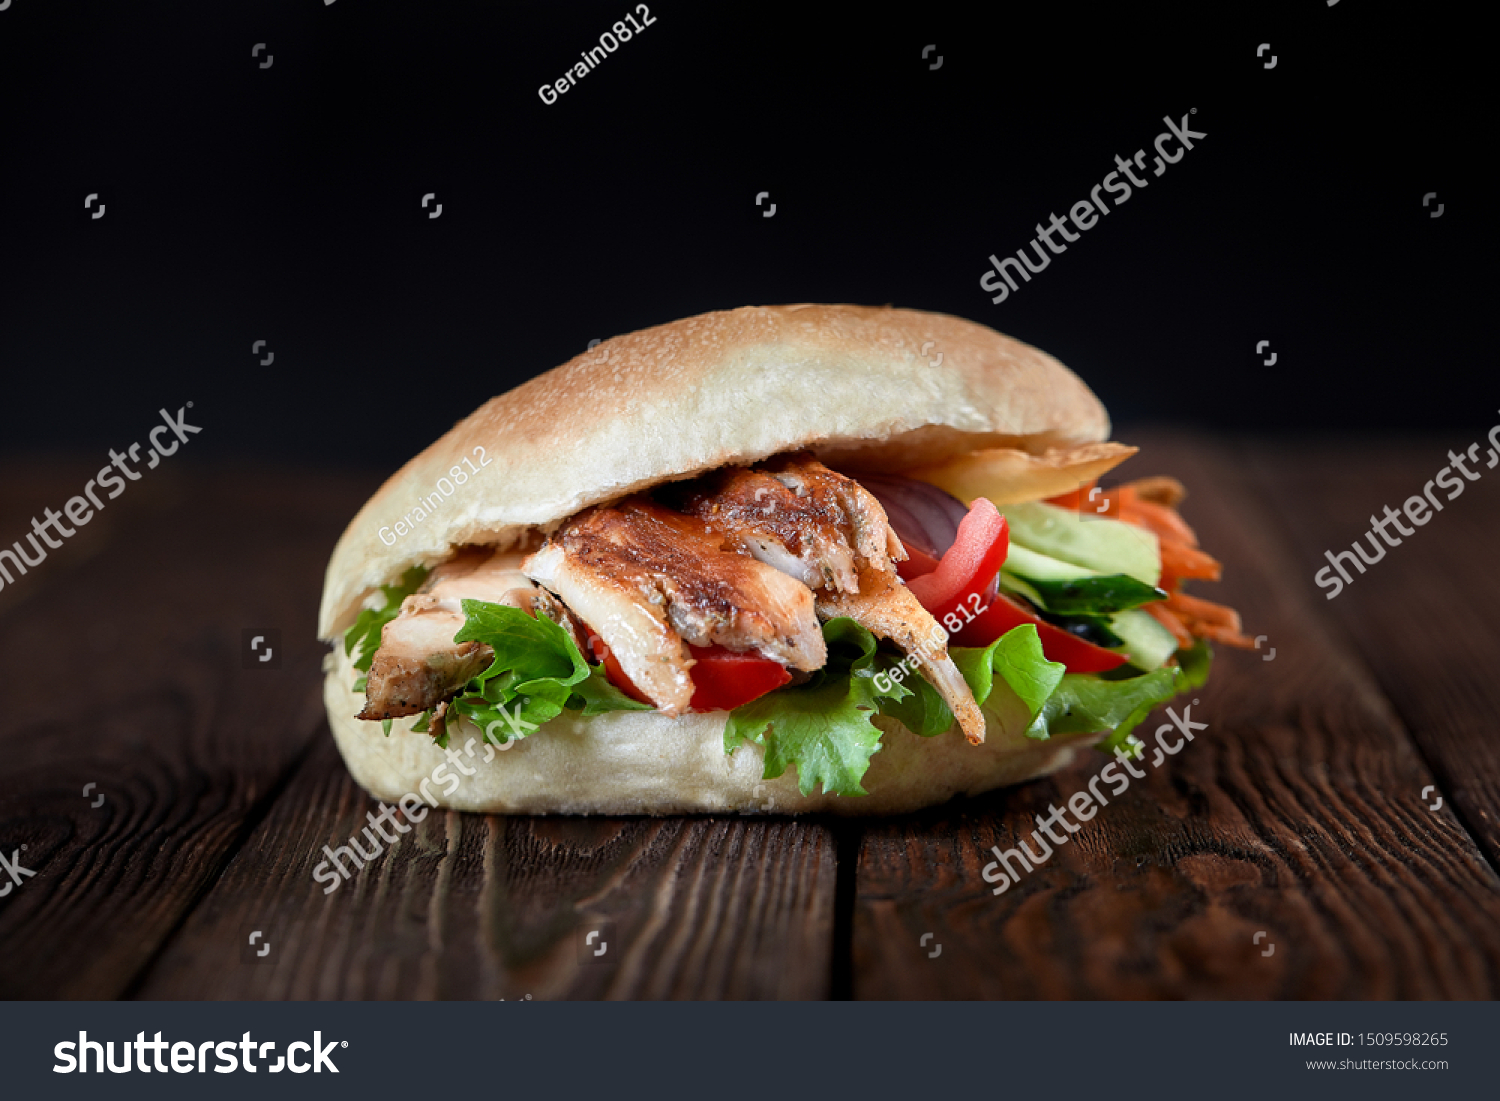 close up of kebab sandwich on wooden background #1509598265